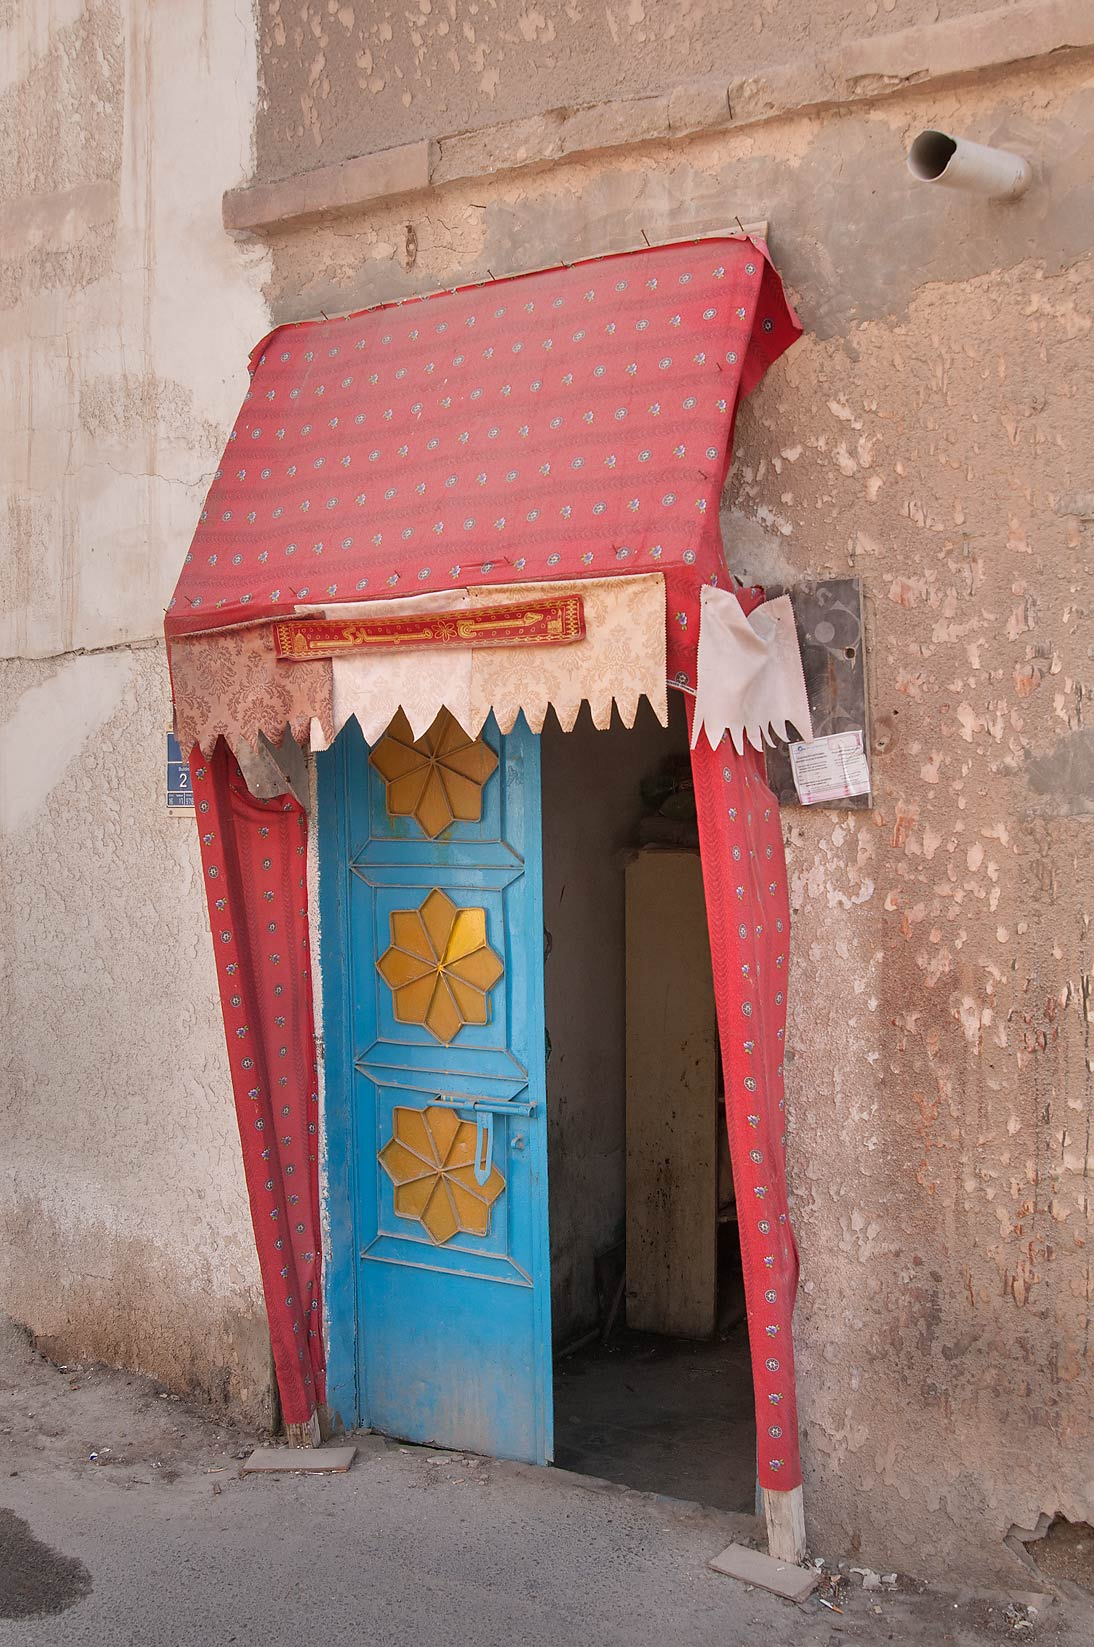 Colorful doorway at Tariq Bin Ziyad St.. Doha, Qatar